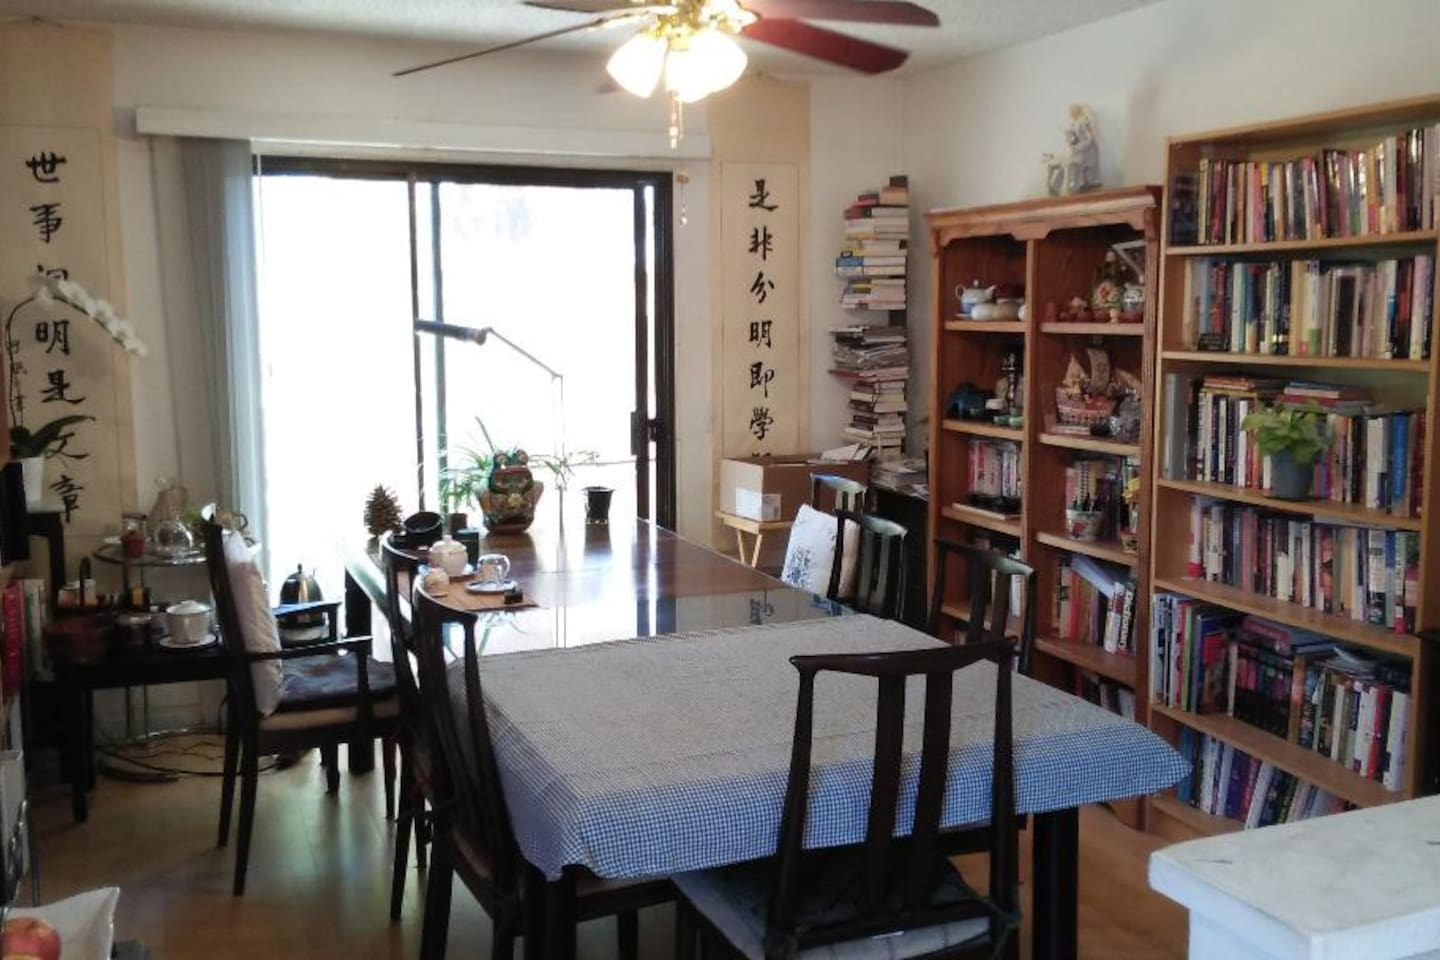 Dining area for guests and is a tea room with book shelves, for my reading and writing.